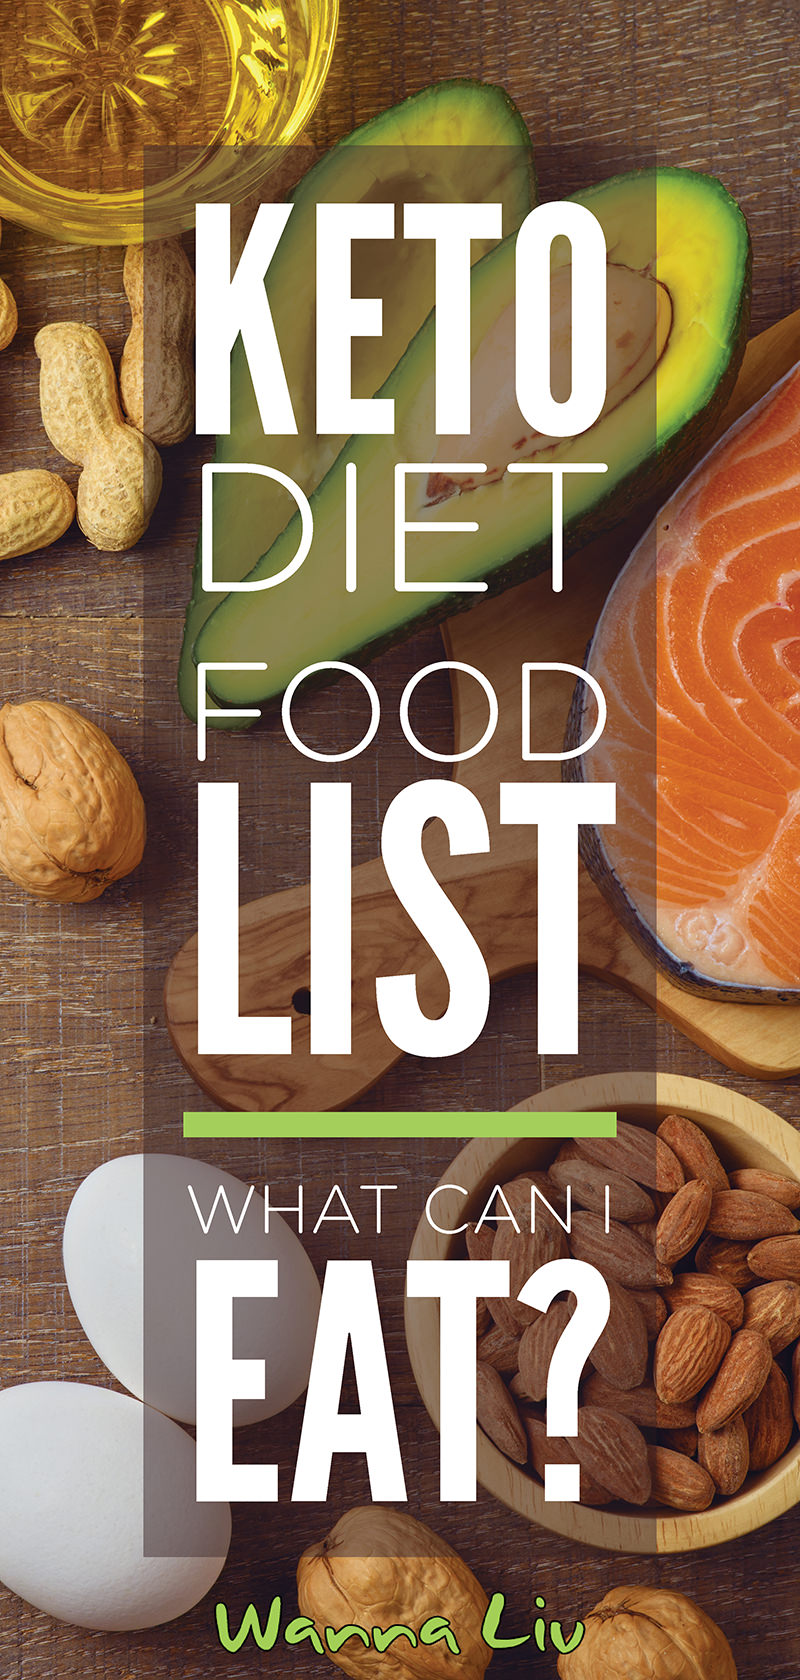 "Keto food items on a table with overlay text ""Keto Diet Food List - What Can I Eat?"""